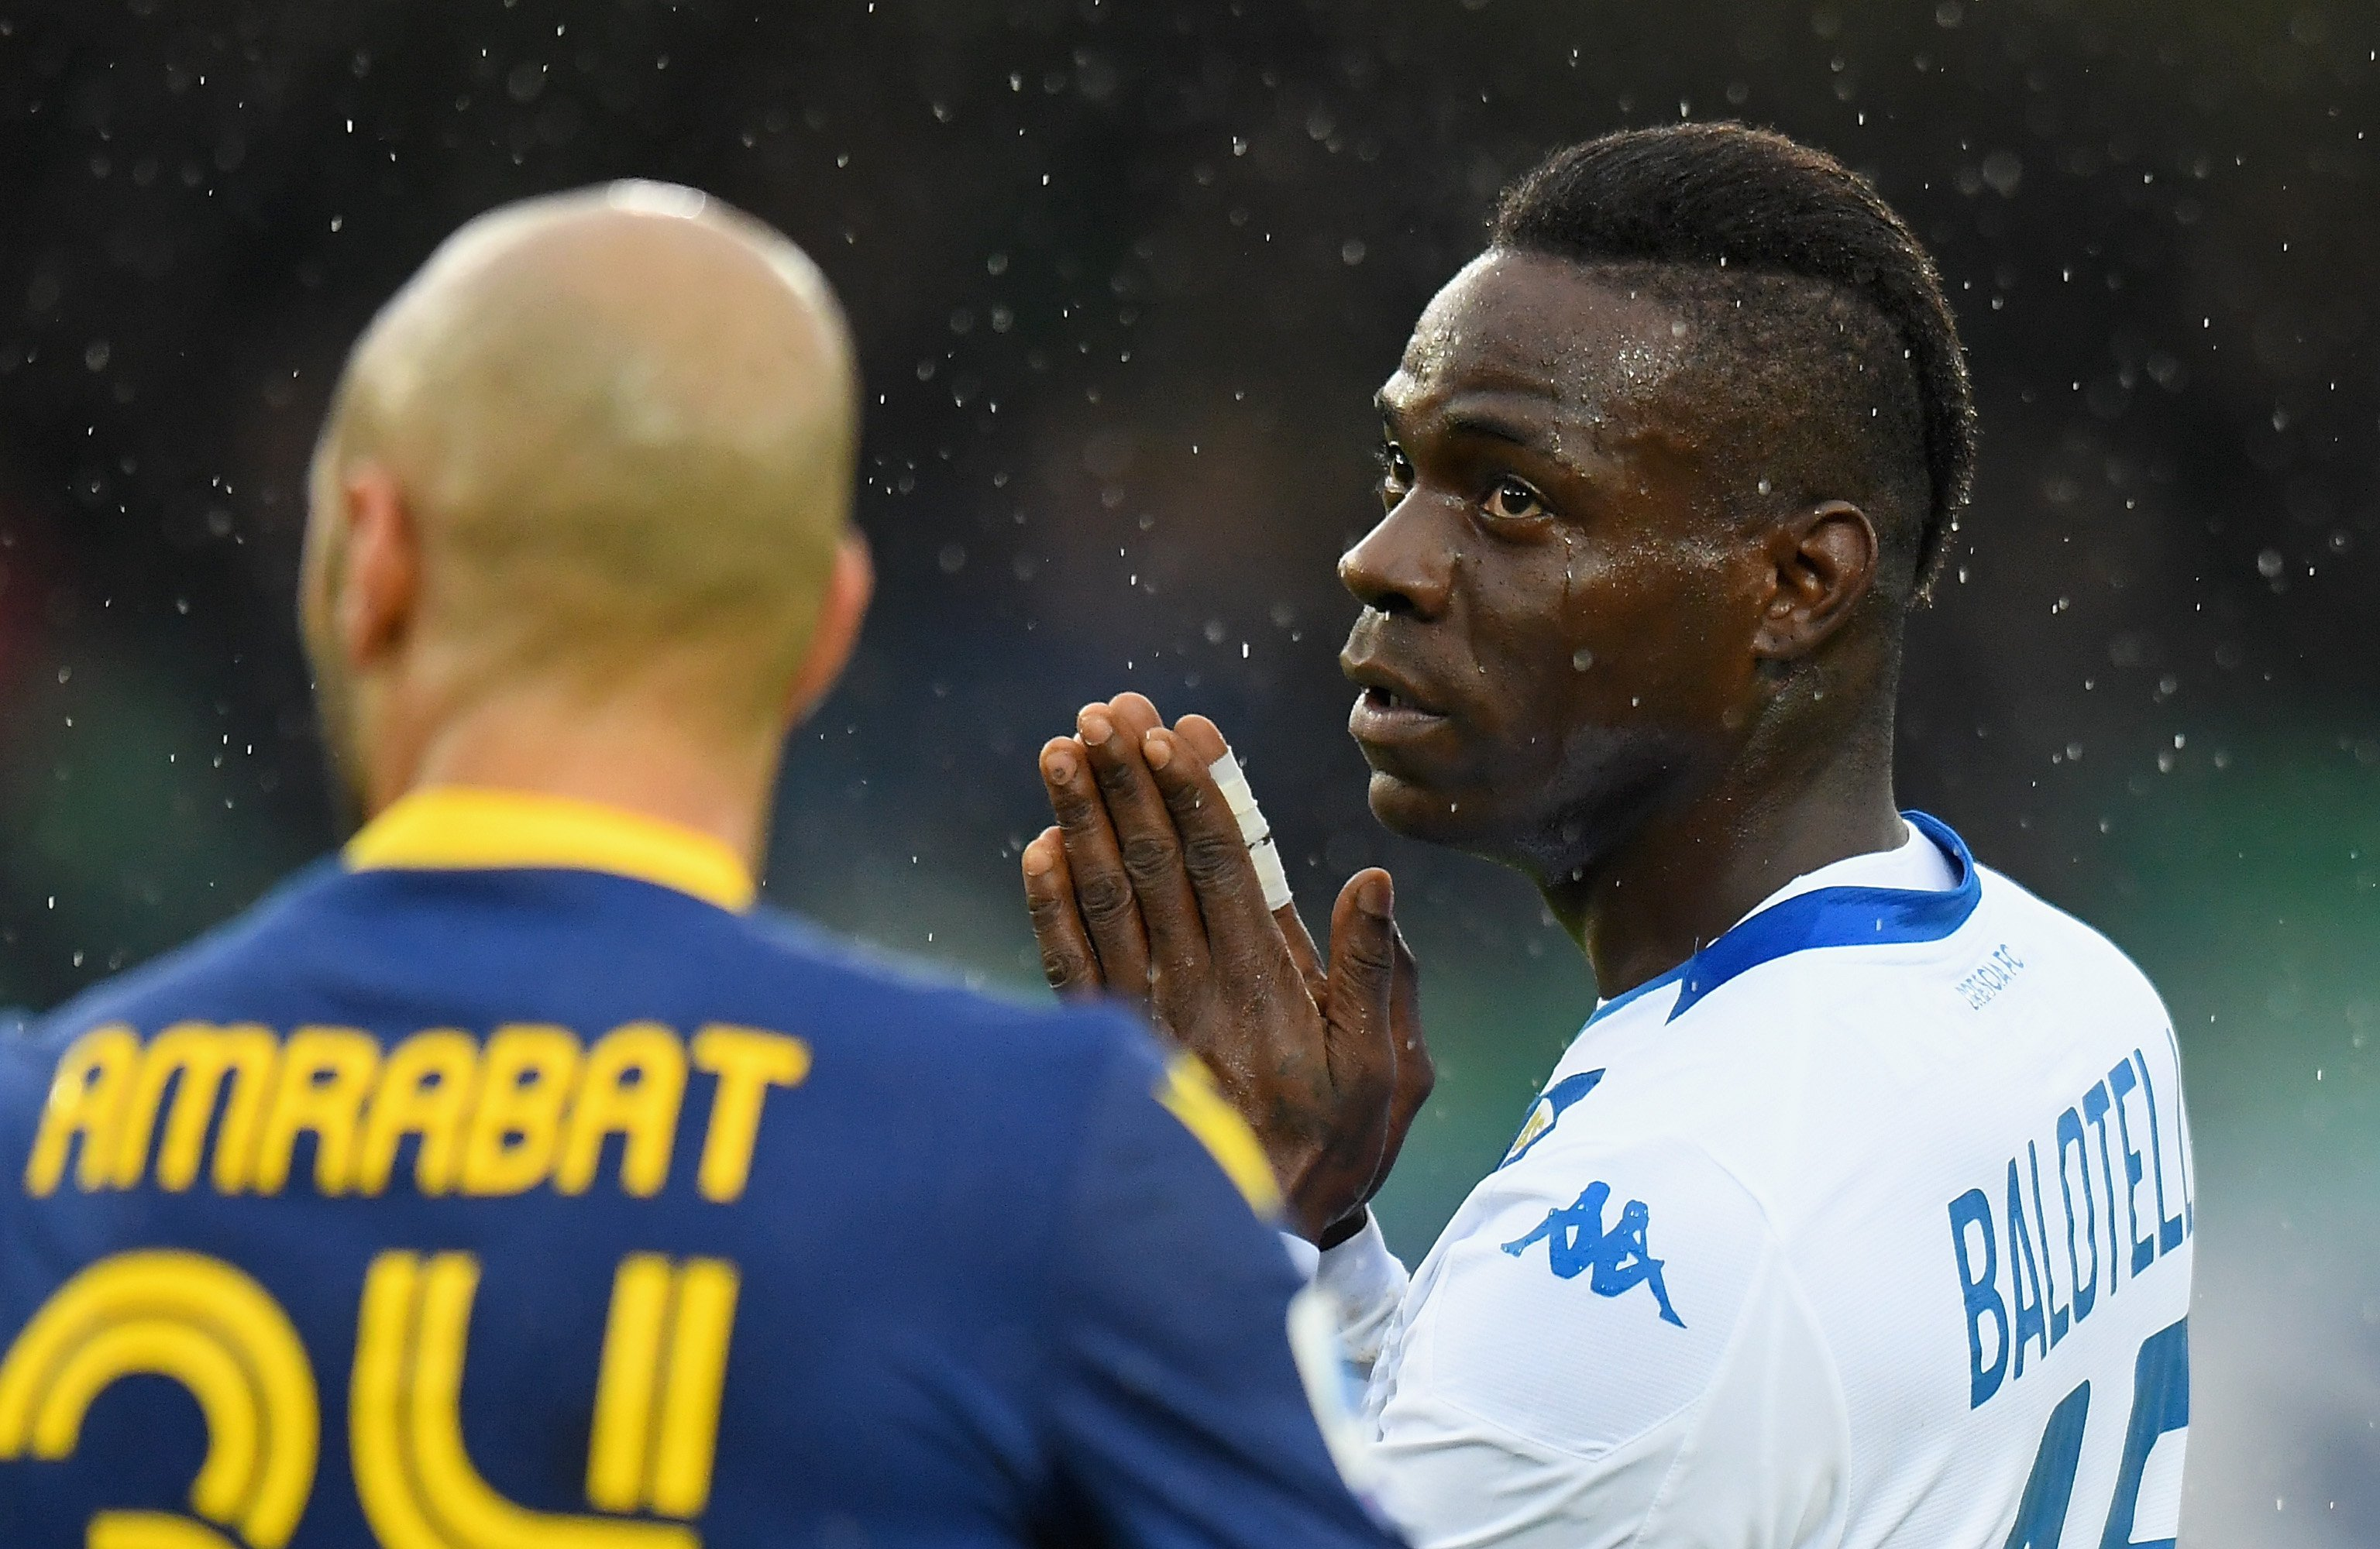 Brescia fans criticize Mario Balotelli after he was racially abused